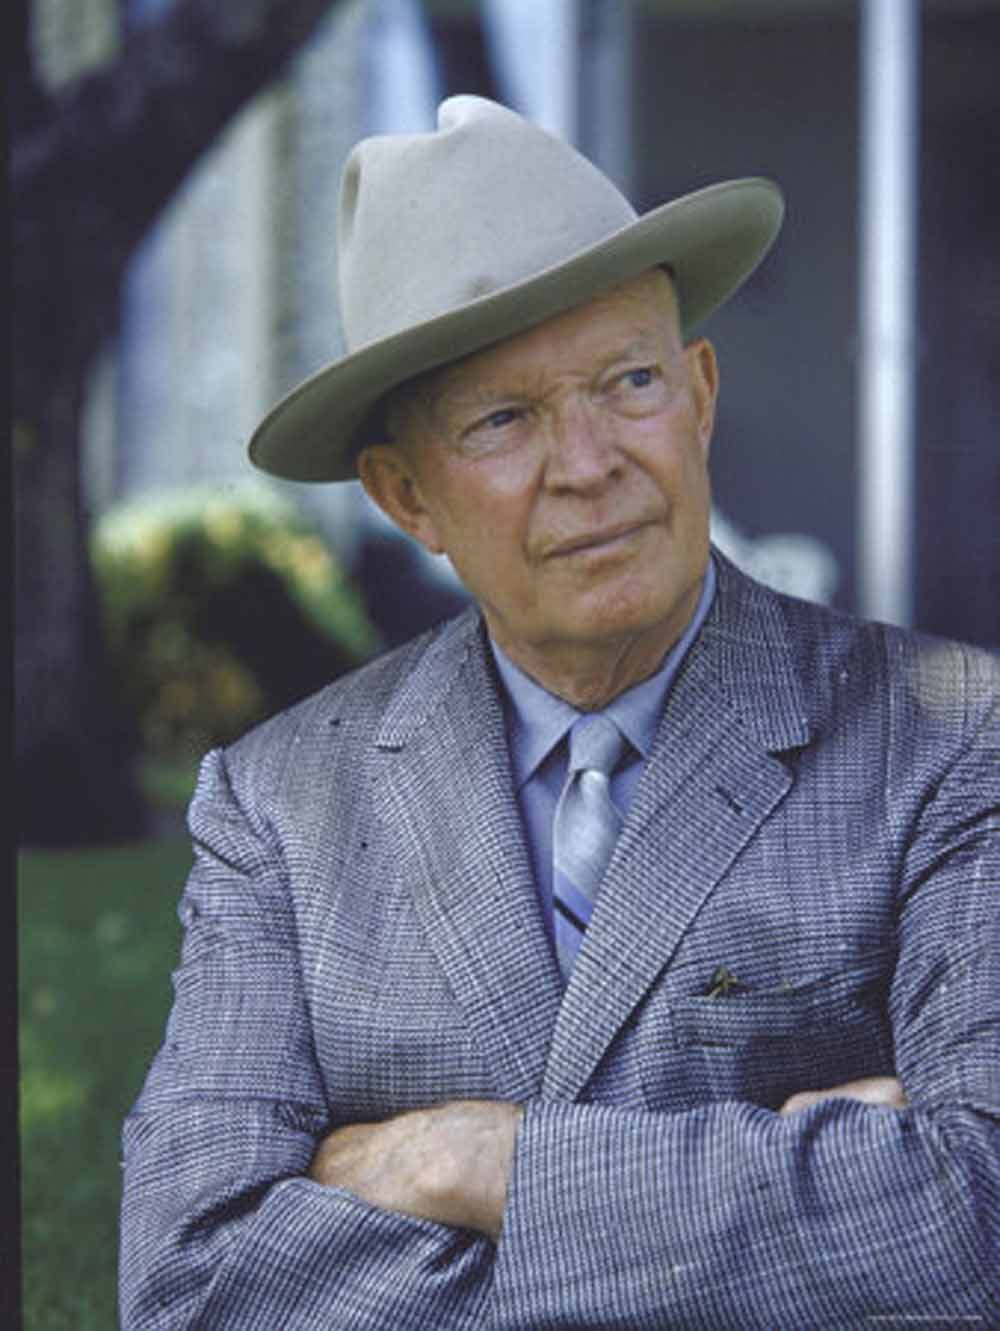 Image result for eisenhower in a hat